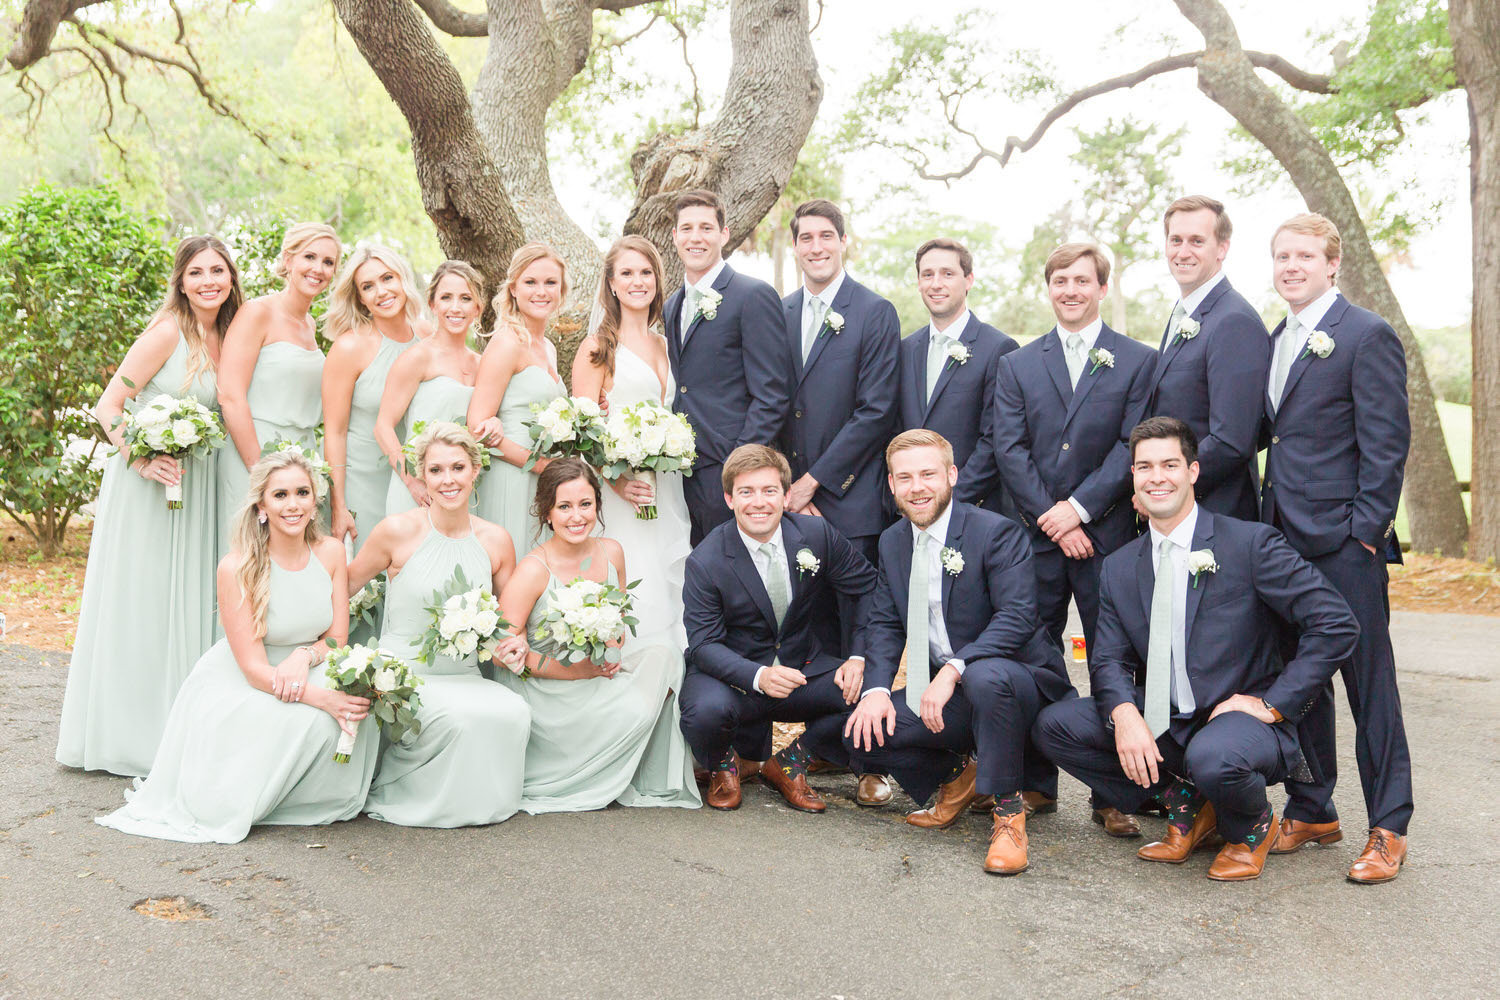 wedding party with bridesmaids and groomsmen